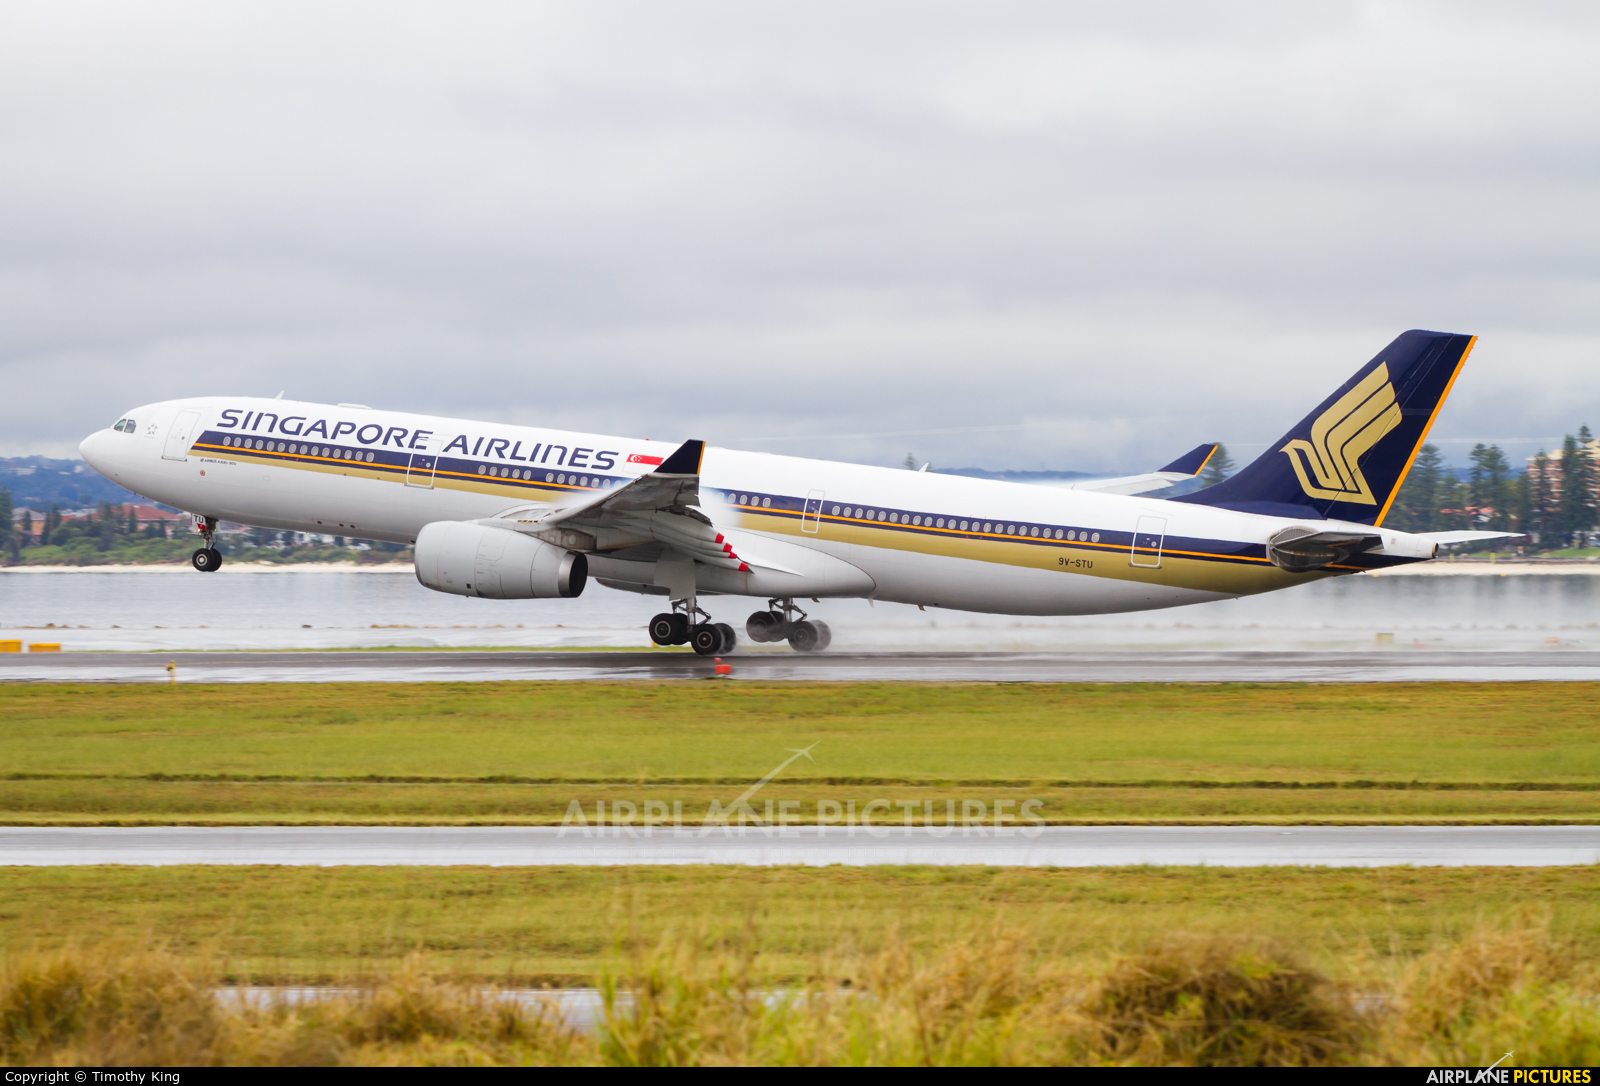 Singapore Airlines 9V-STU aircraft at Sydney - Kingsford Smith Intl, NSW